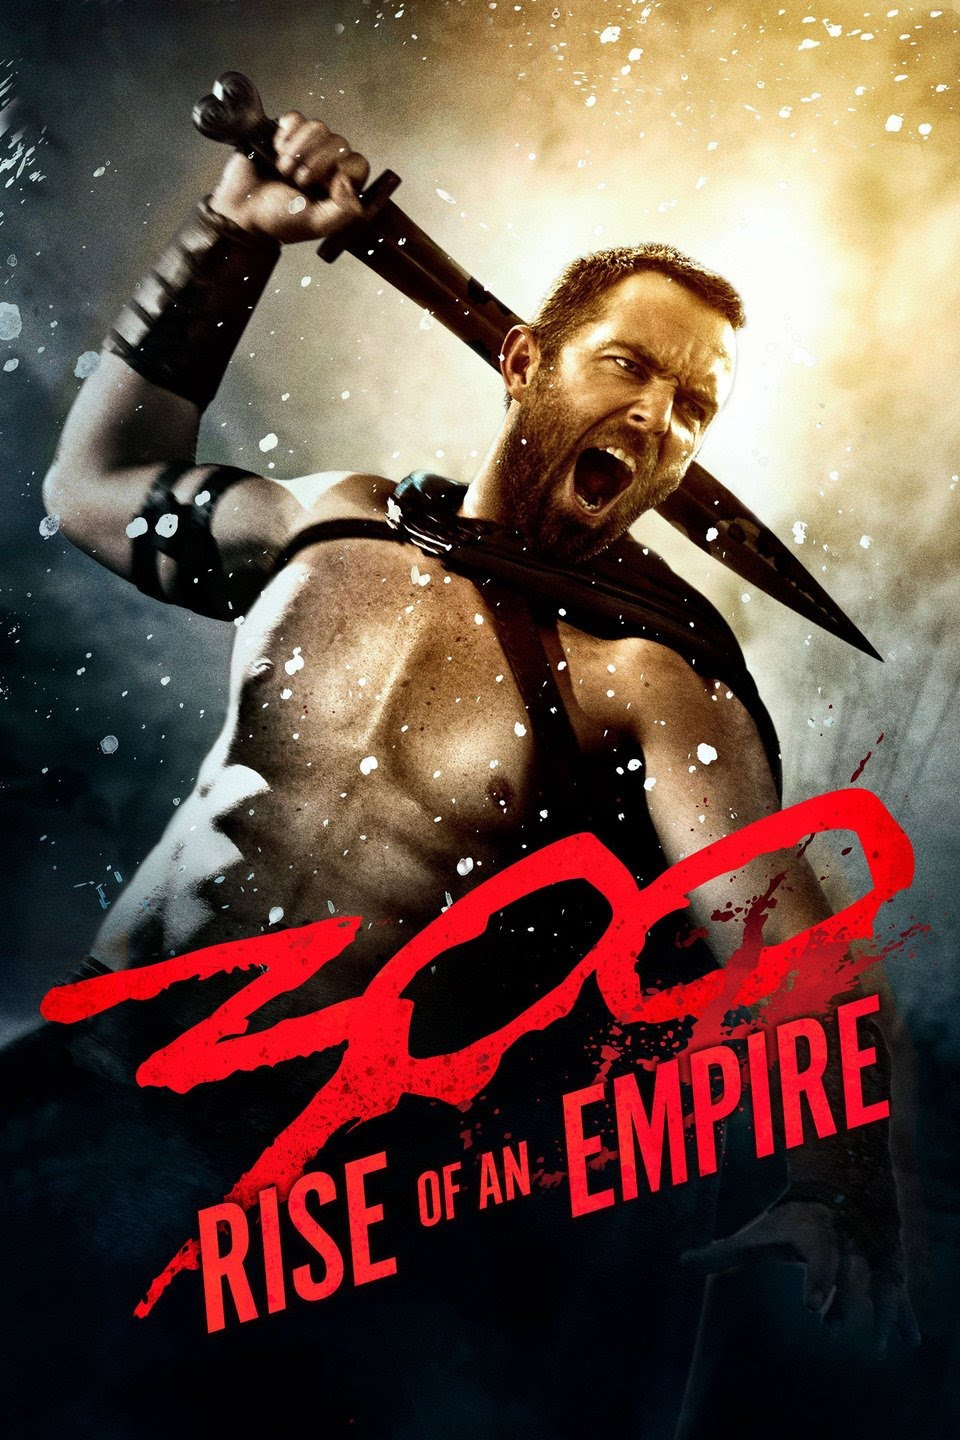 Download 300: Rise of an Empire (2014) Full Movie In Hindi-English (Dual Audio) Bluray 480p [450MB] | 720p [1.3GB] | 1080p [2.8GB]